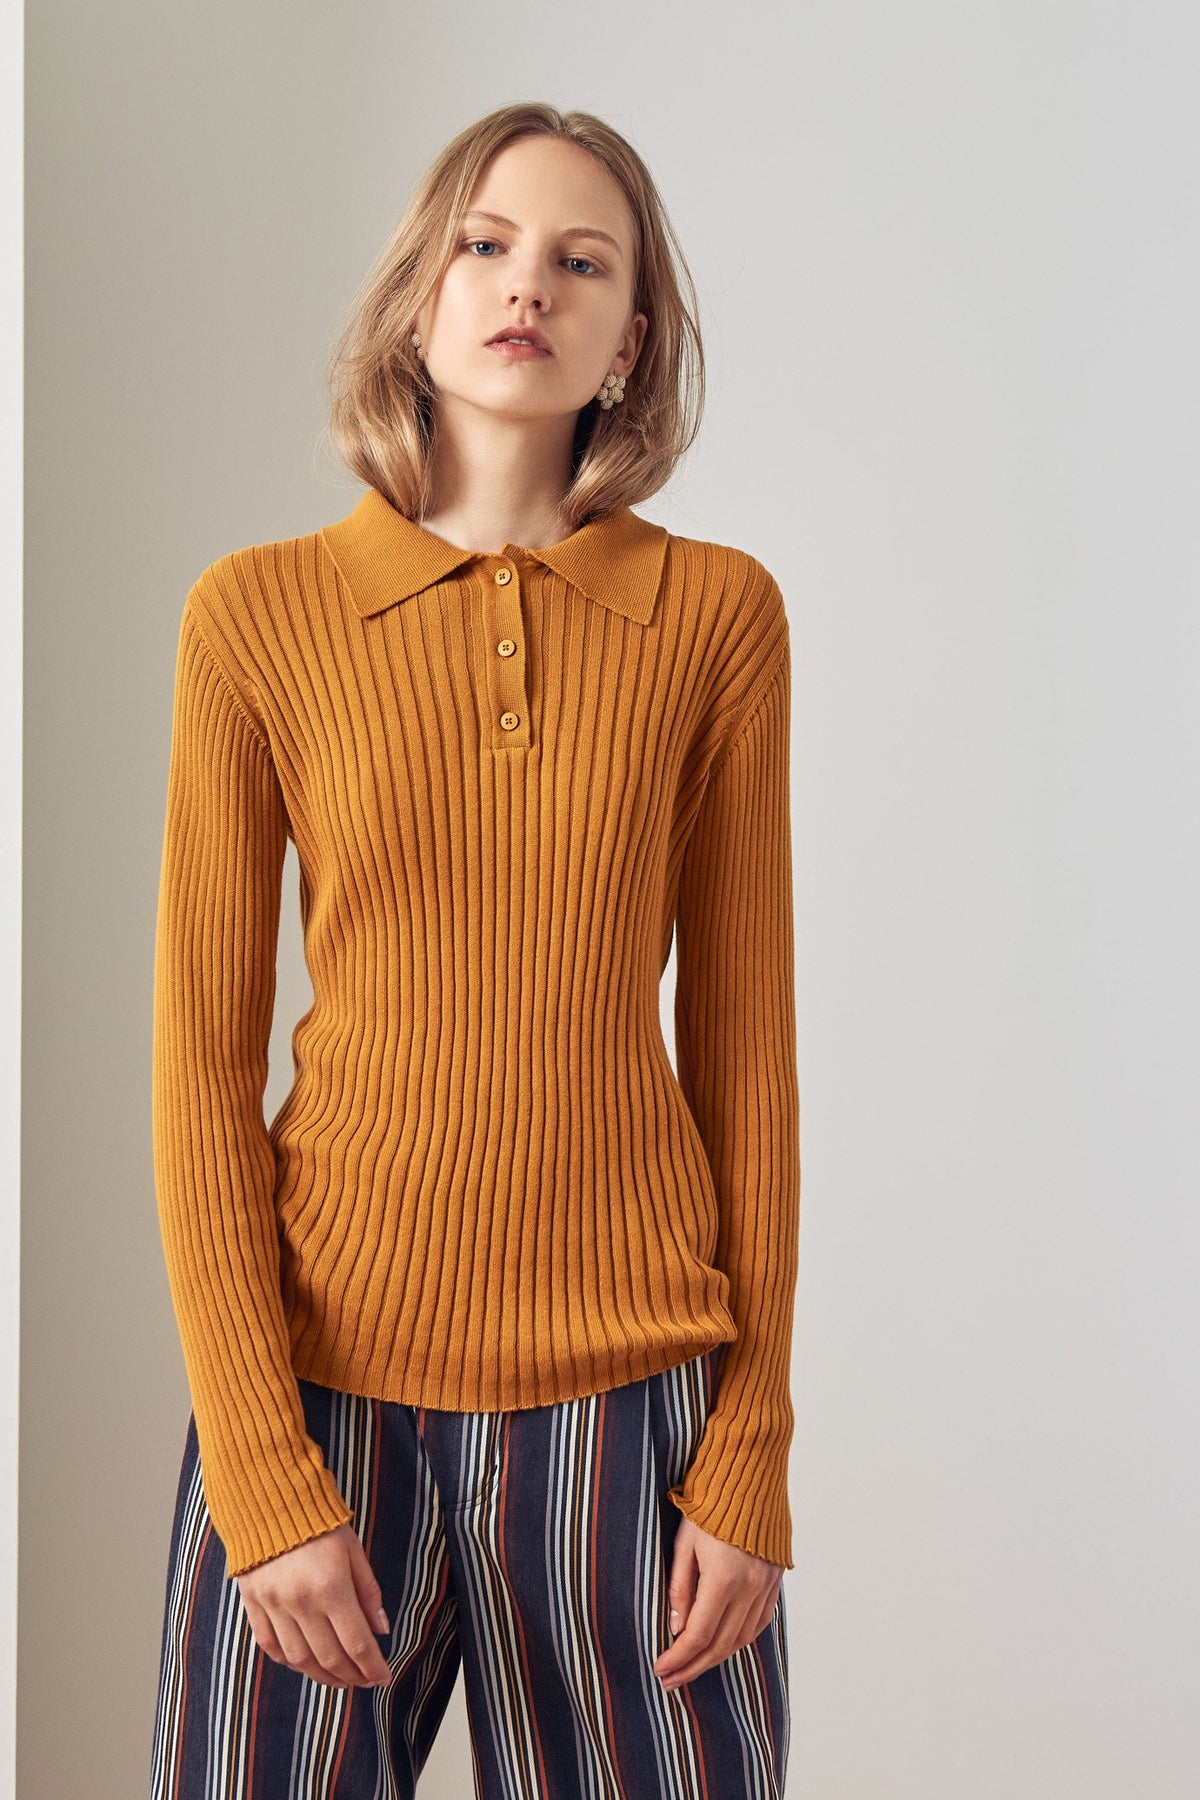 Kowtow stockists Rib Polo Amber Ethical Organic Fairtrade